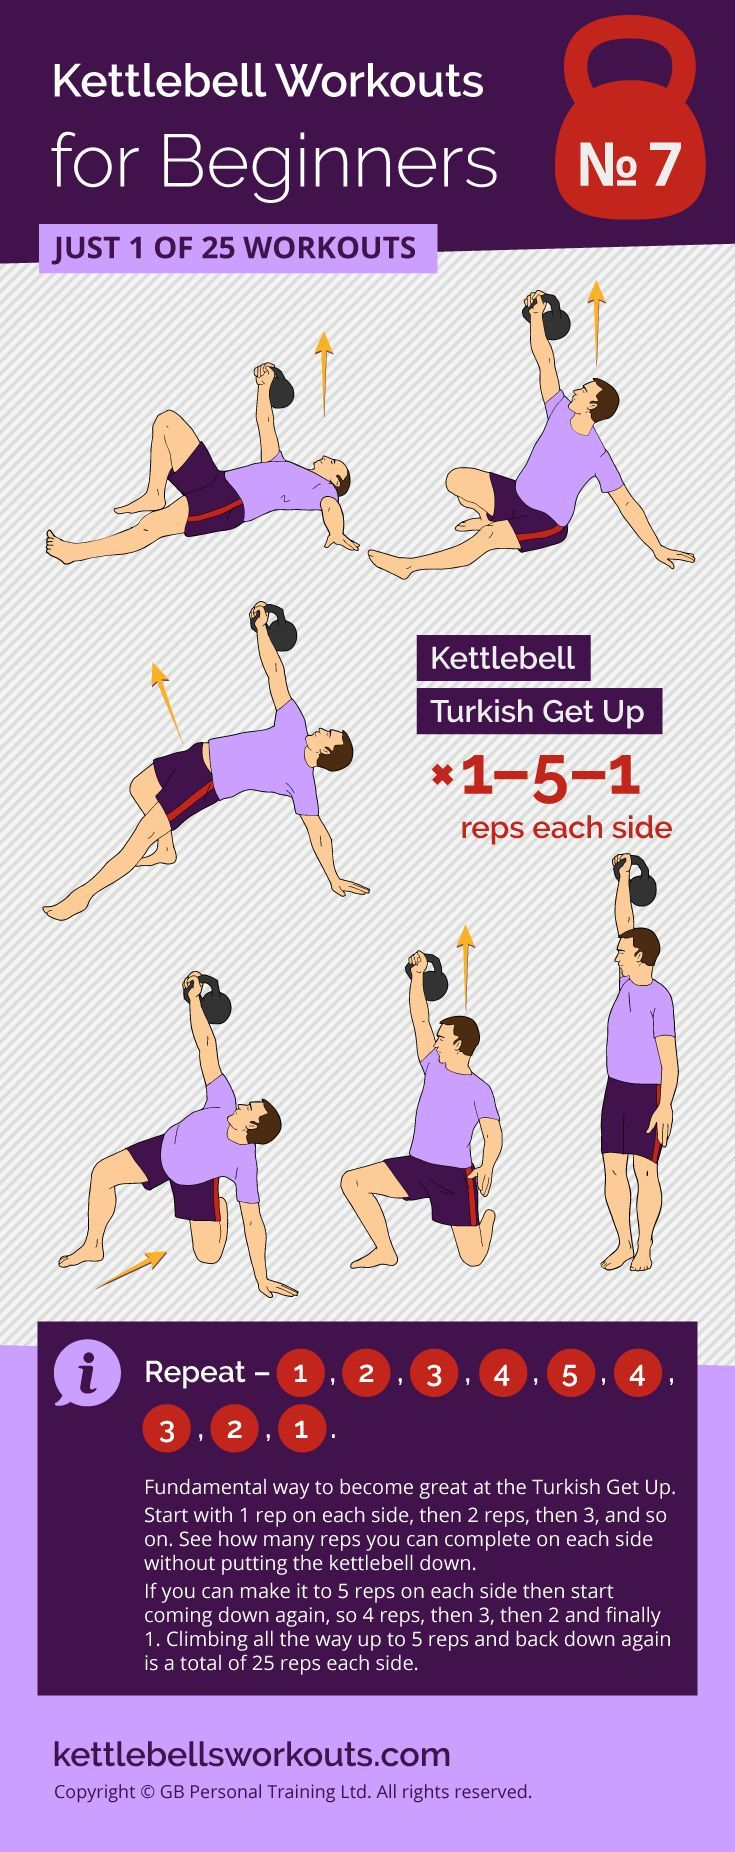 1 of 25 kettlebell workouts for beginners that will build a solid kettlebell training foundation. Us...